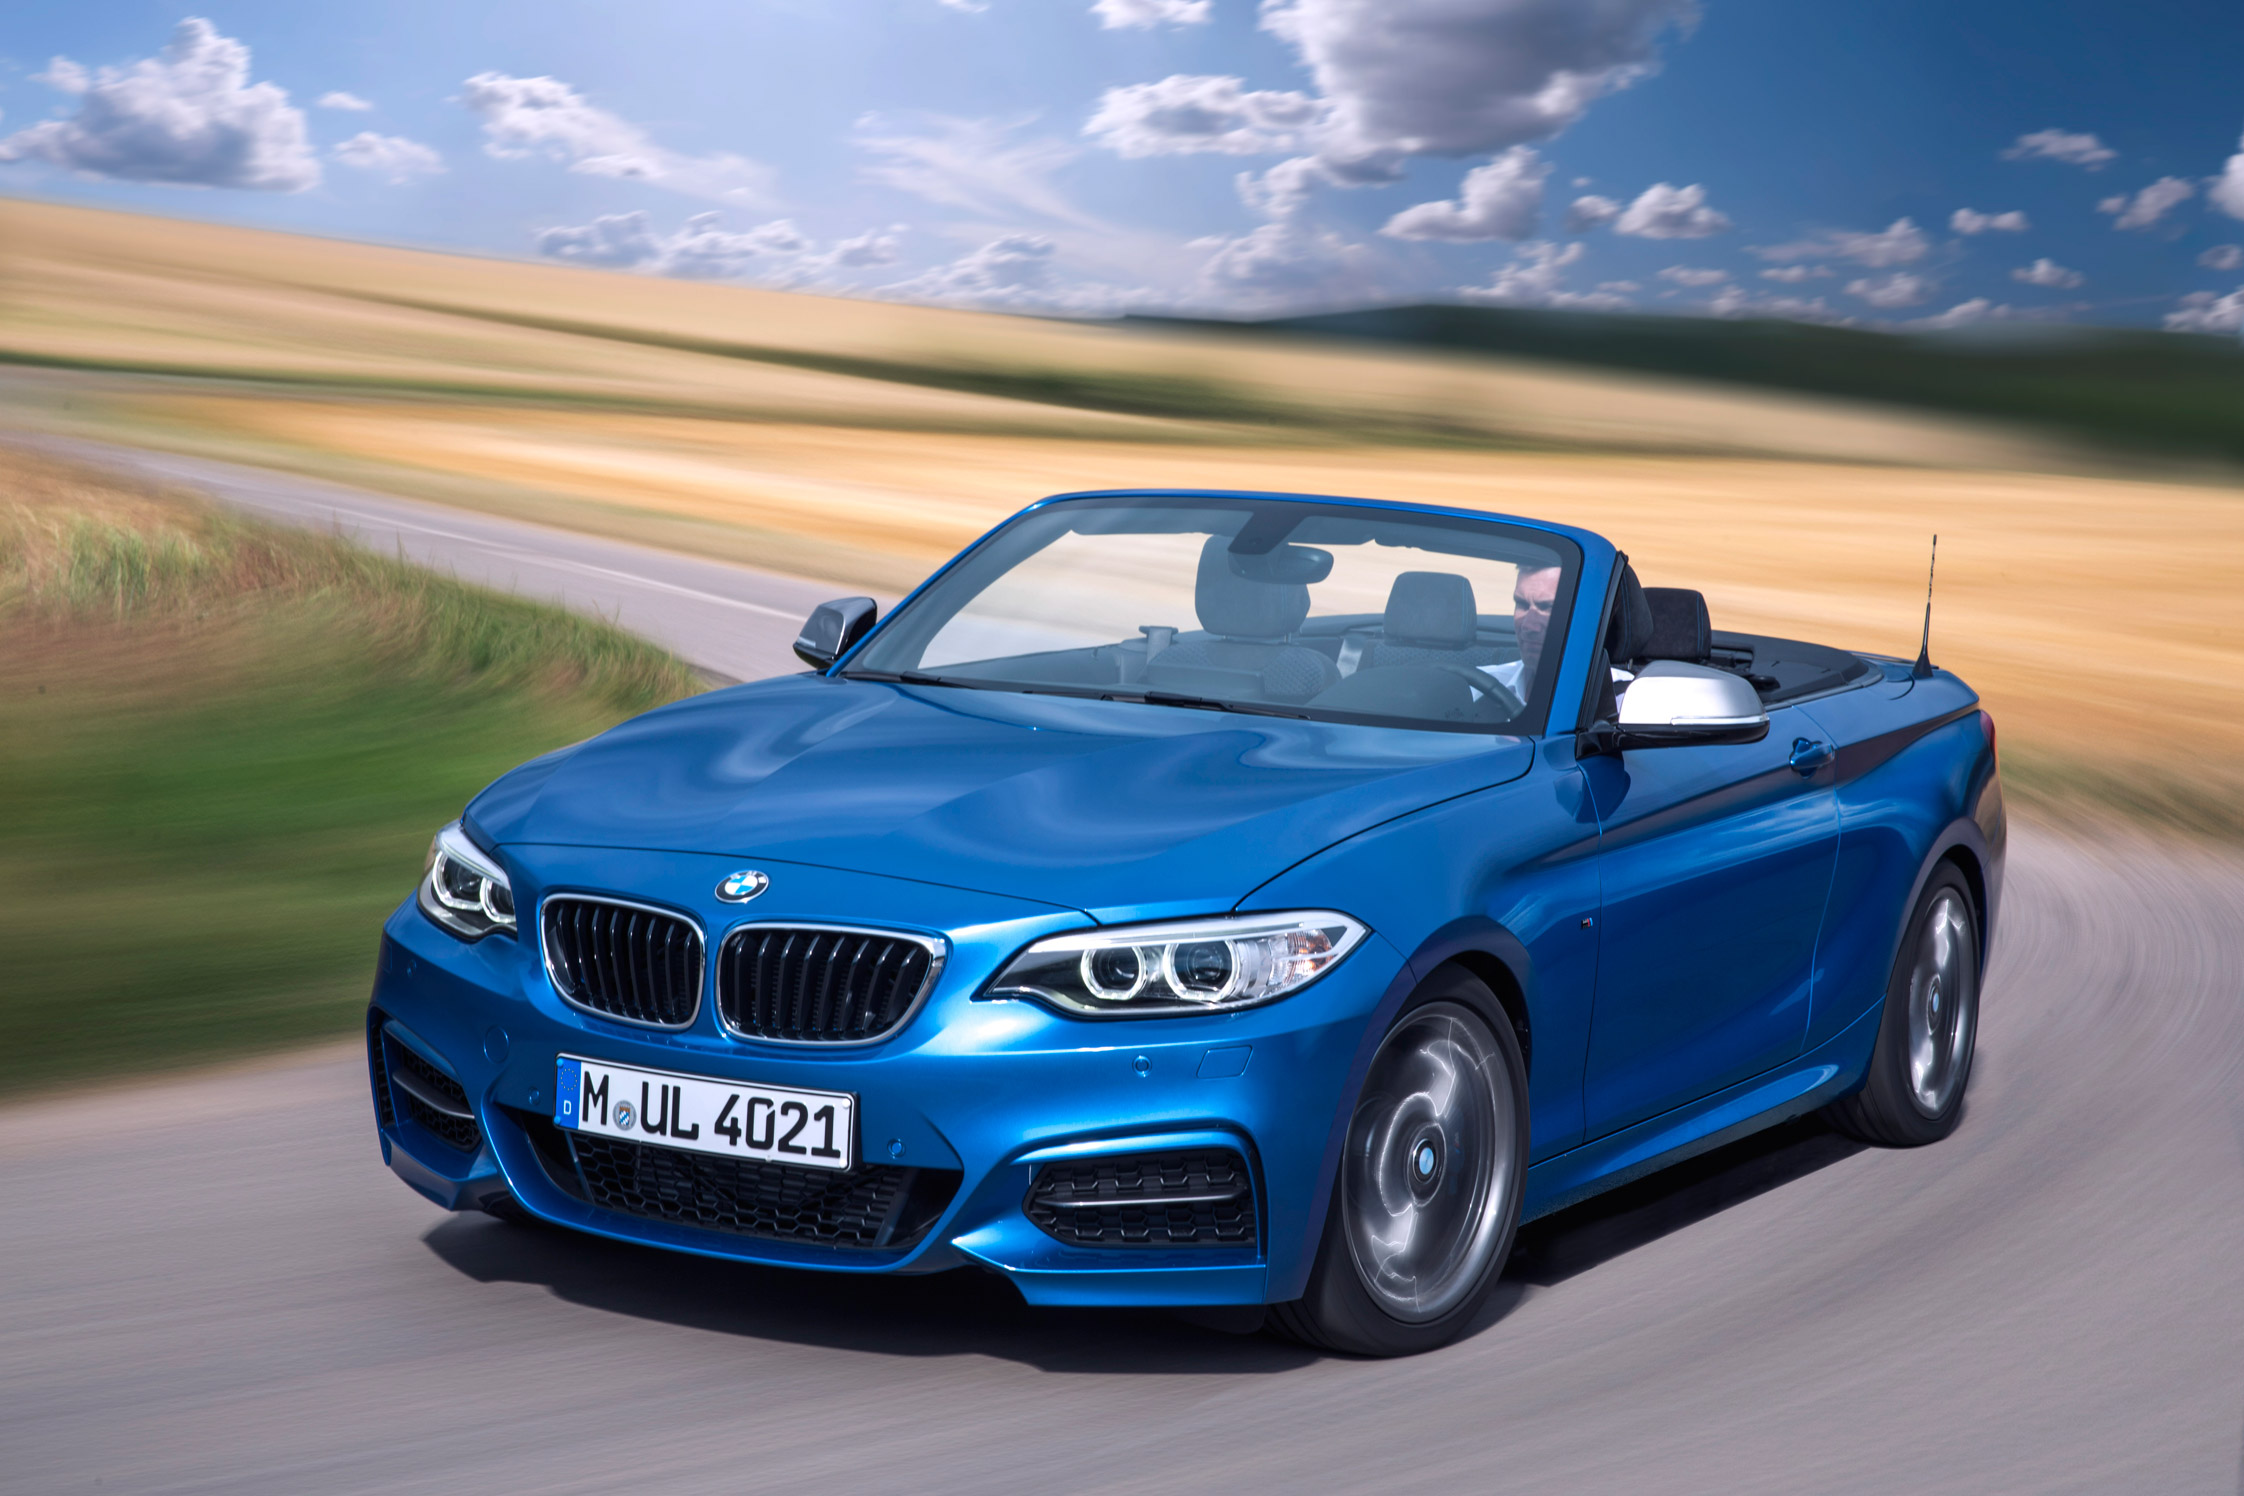 essai bmw m235i cabriolet motorlegend. Black Bedroom Furniture Sets. Home Design Ideas